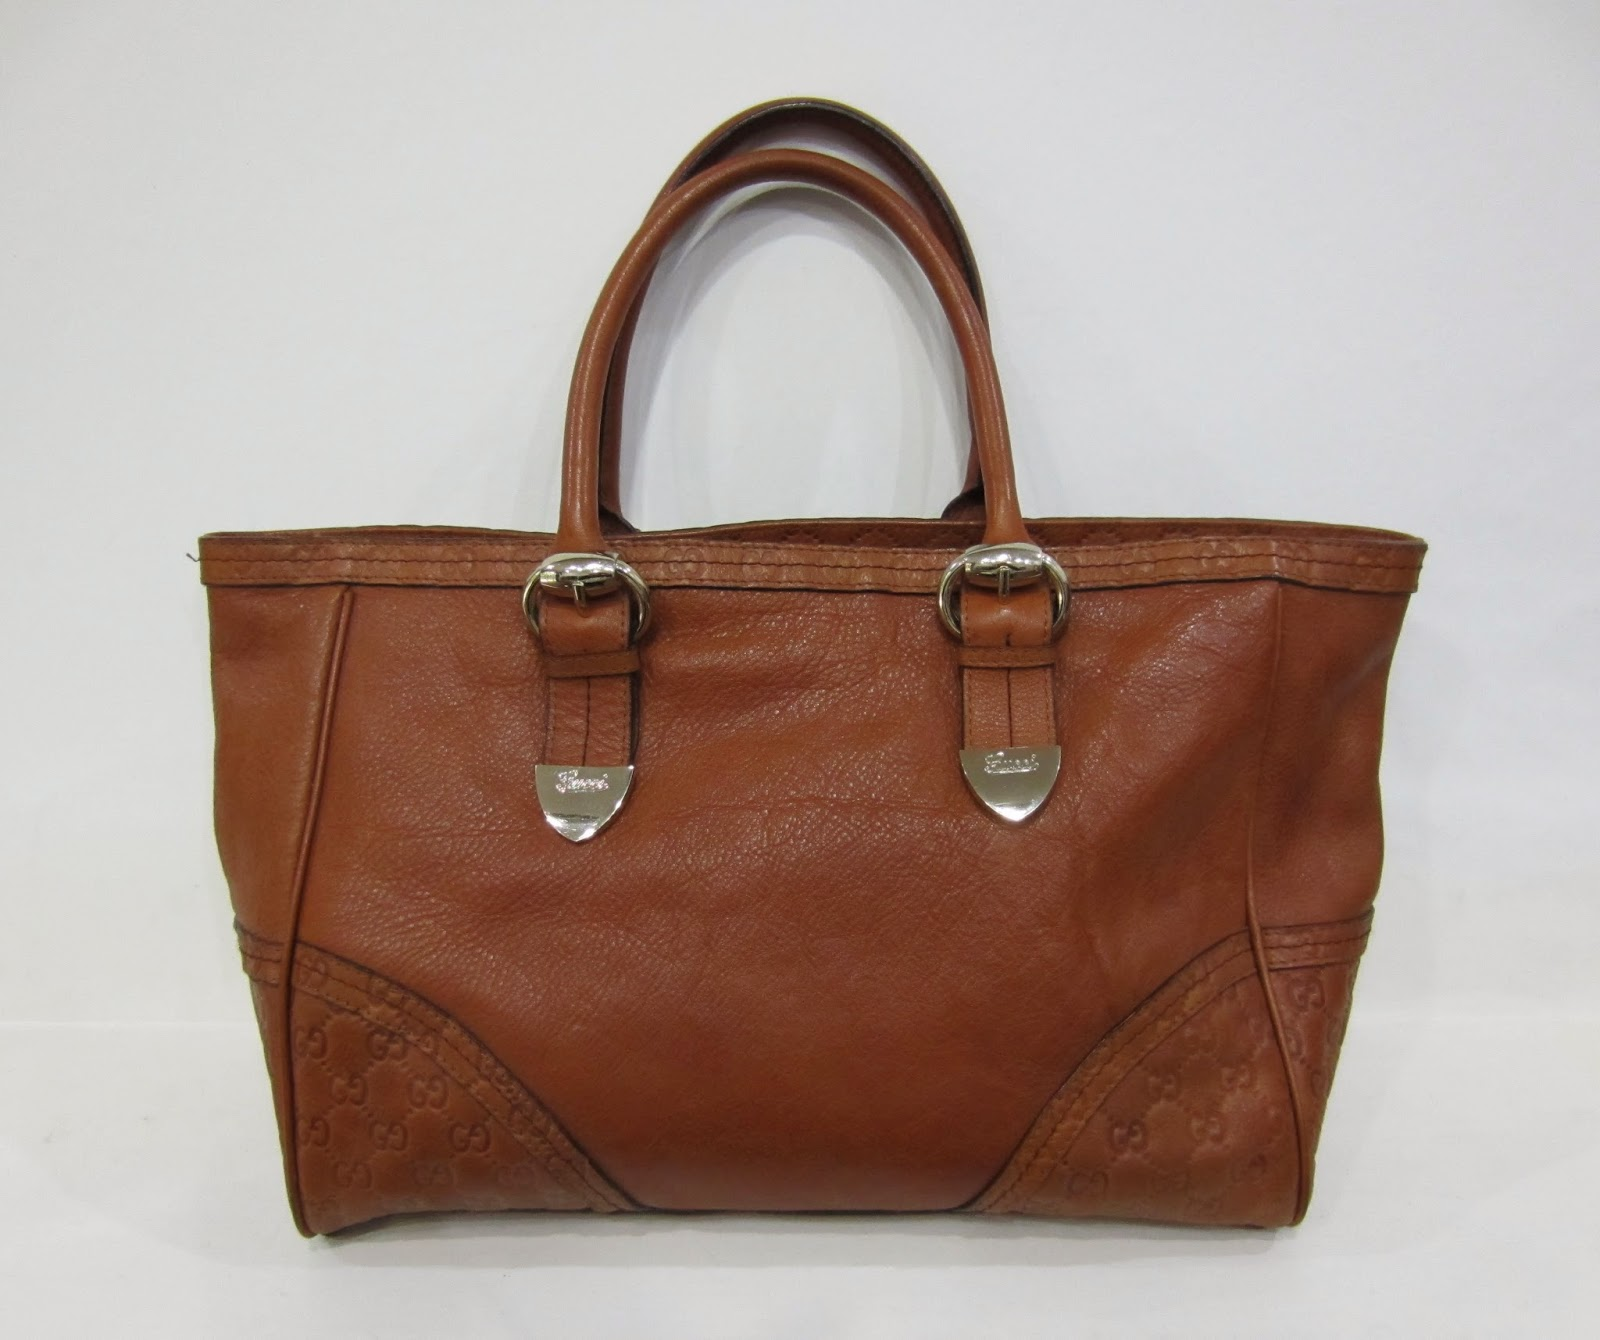 Gucci Brown Leather Vintage Style Tote Bag